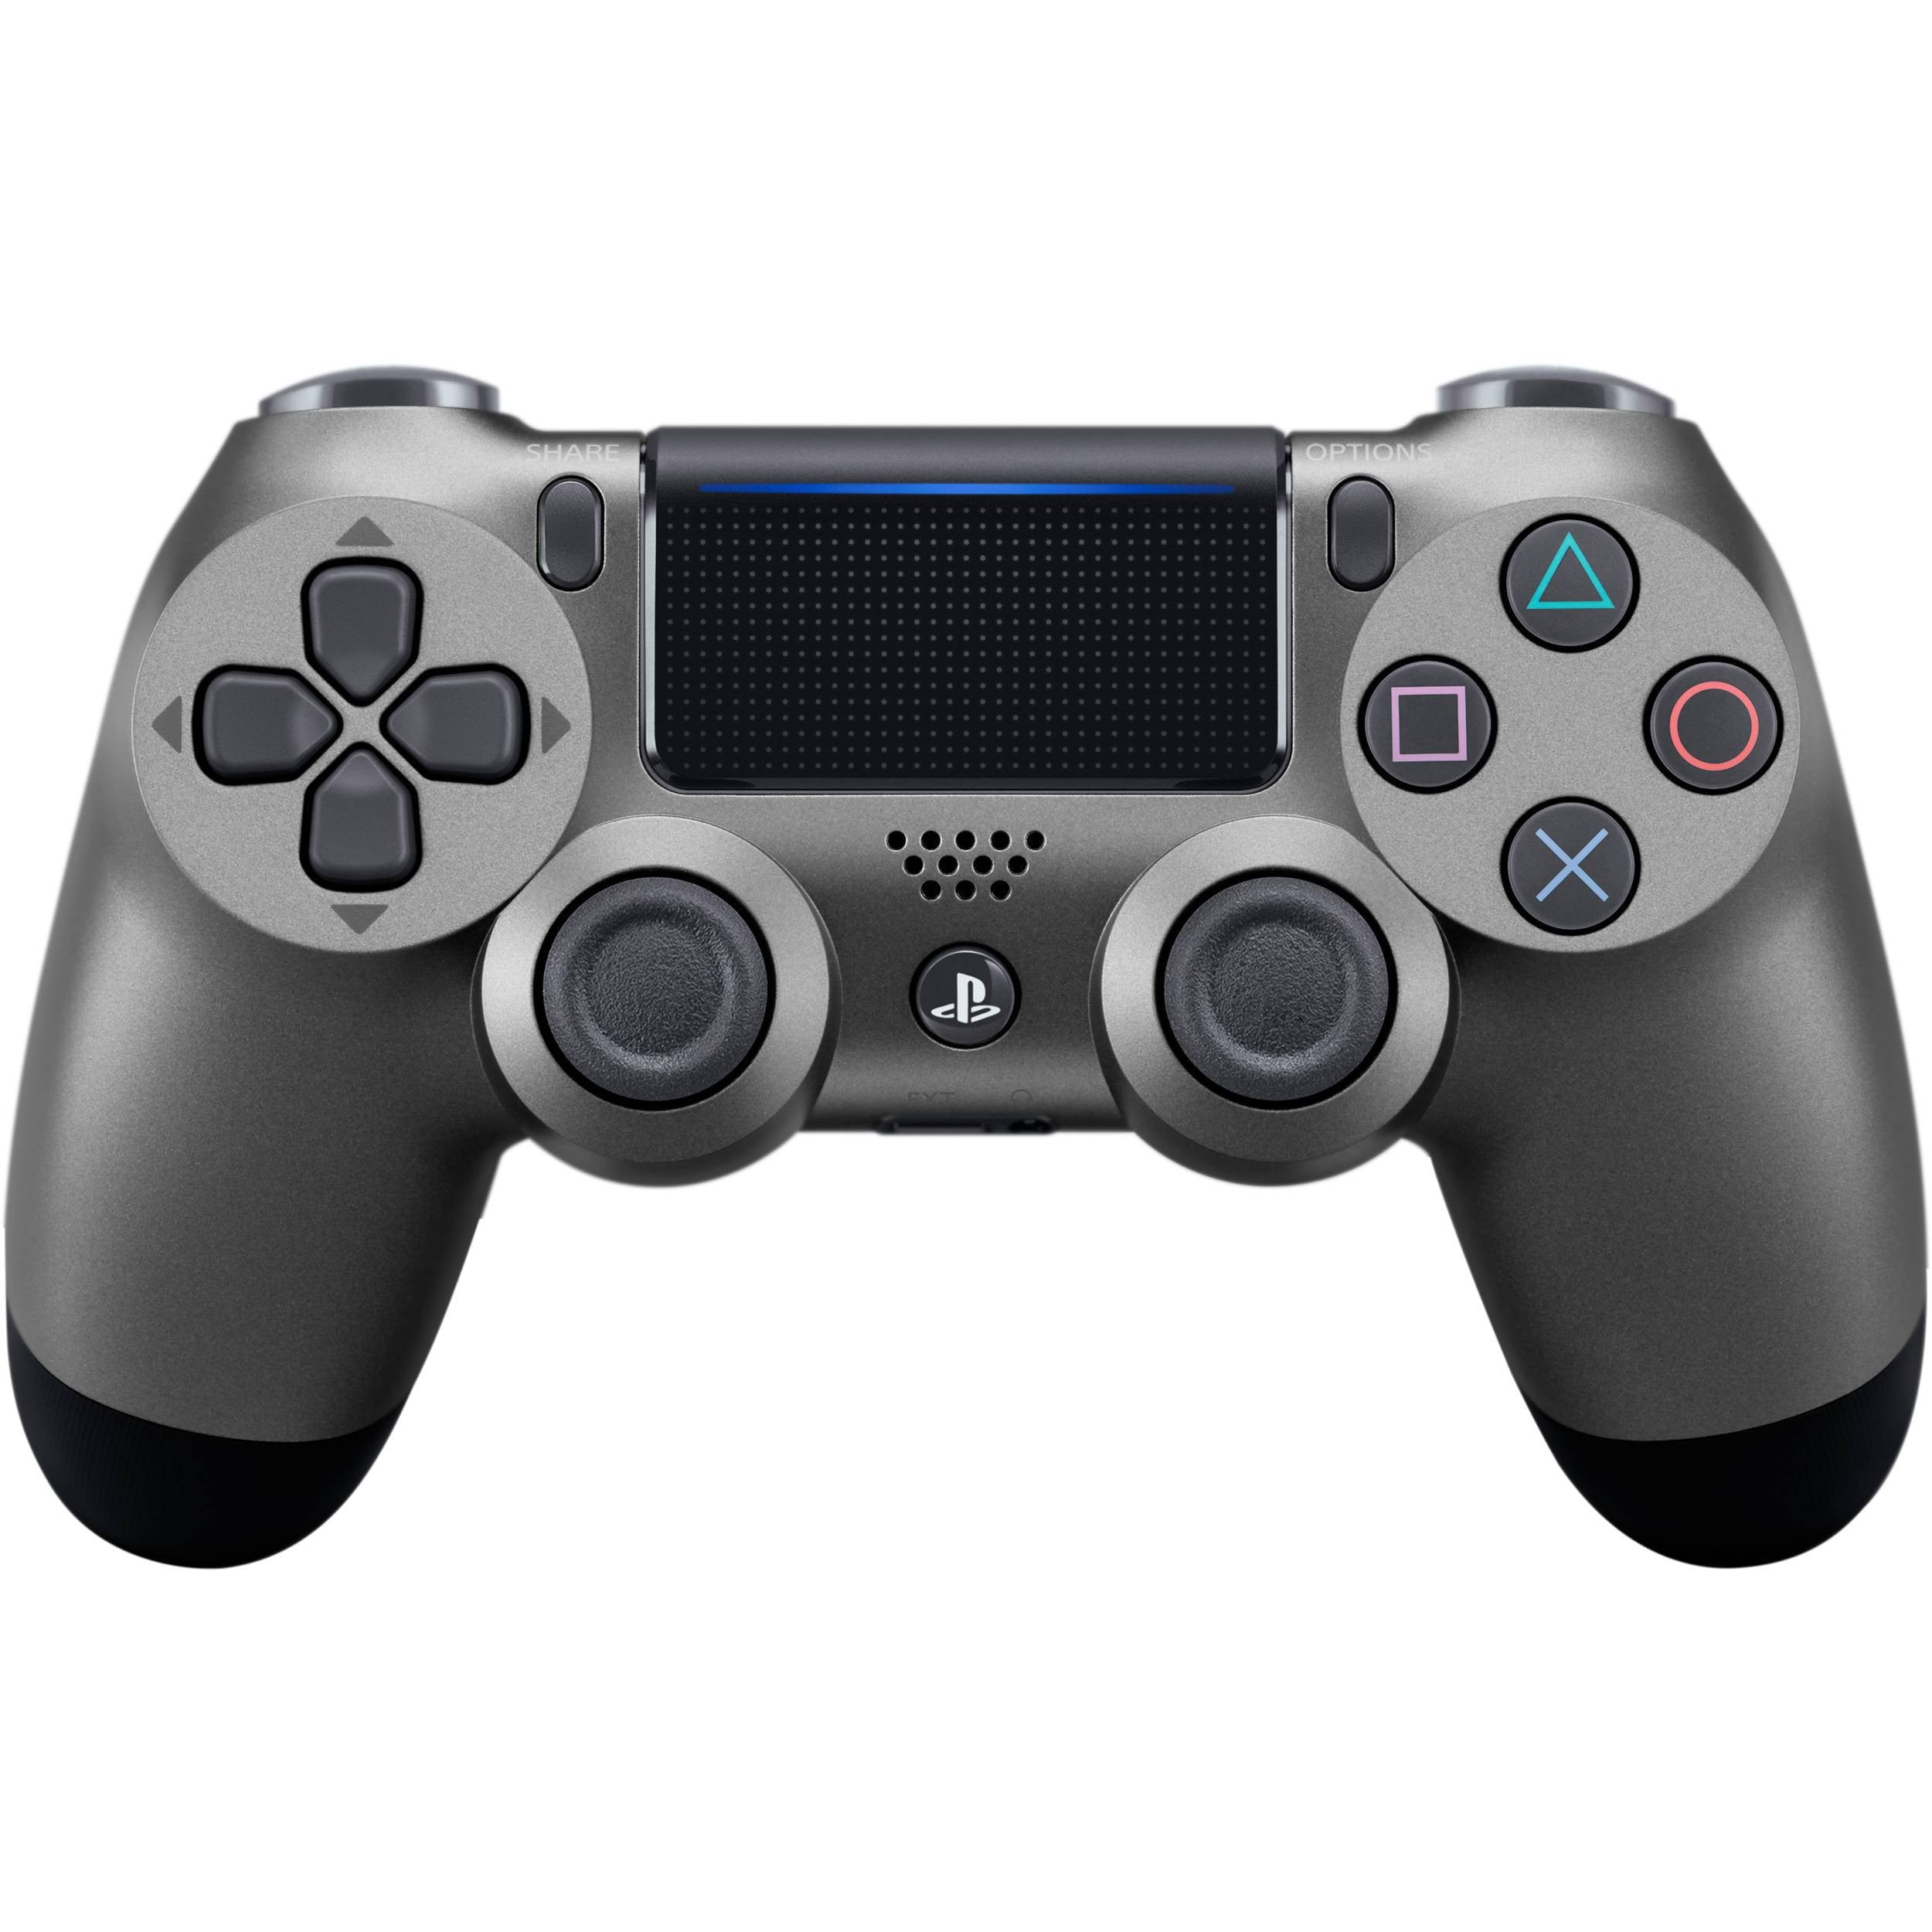 Buy PlayStation 4 (PS4) Controller Steel Black Accessories in Egypt - Shamy Stores